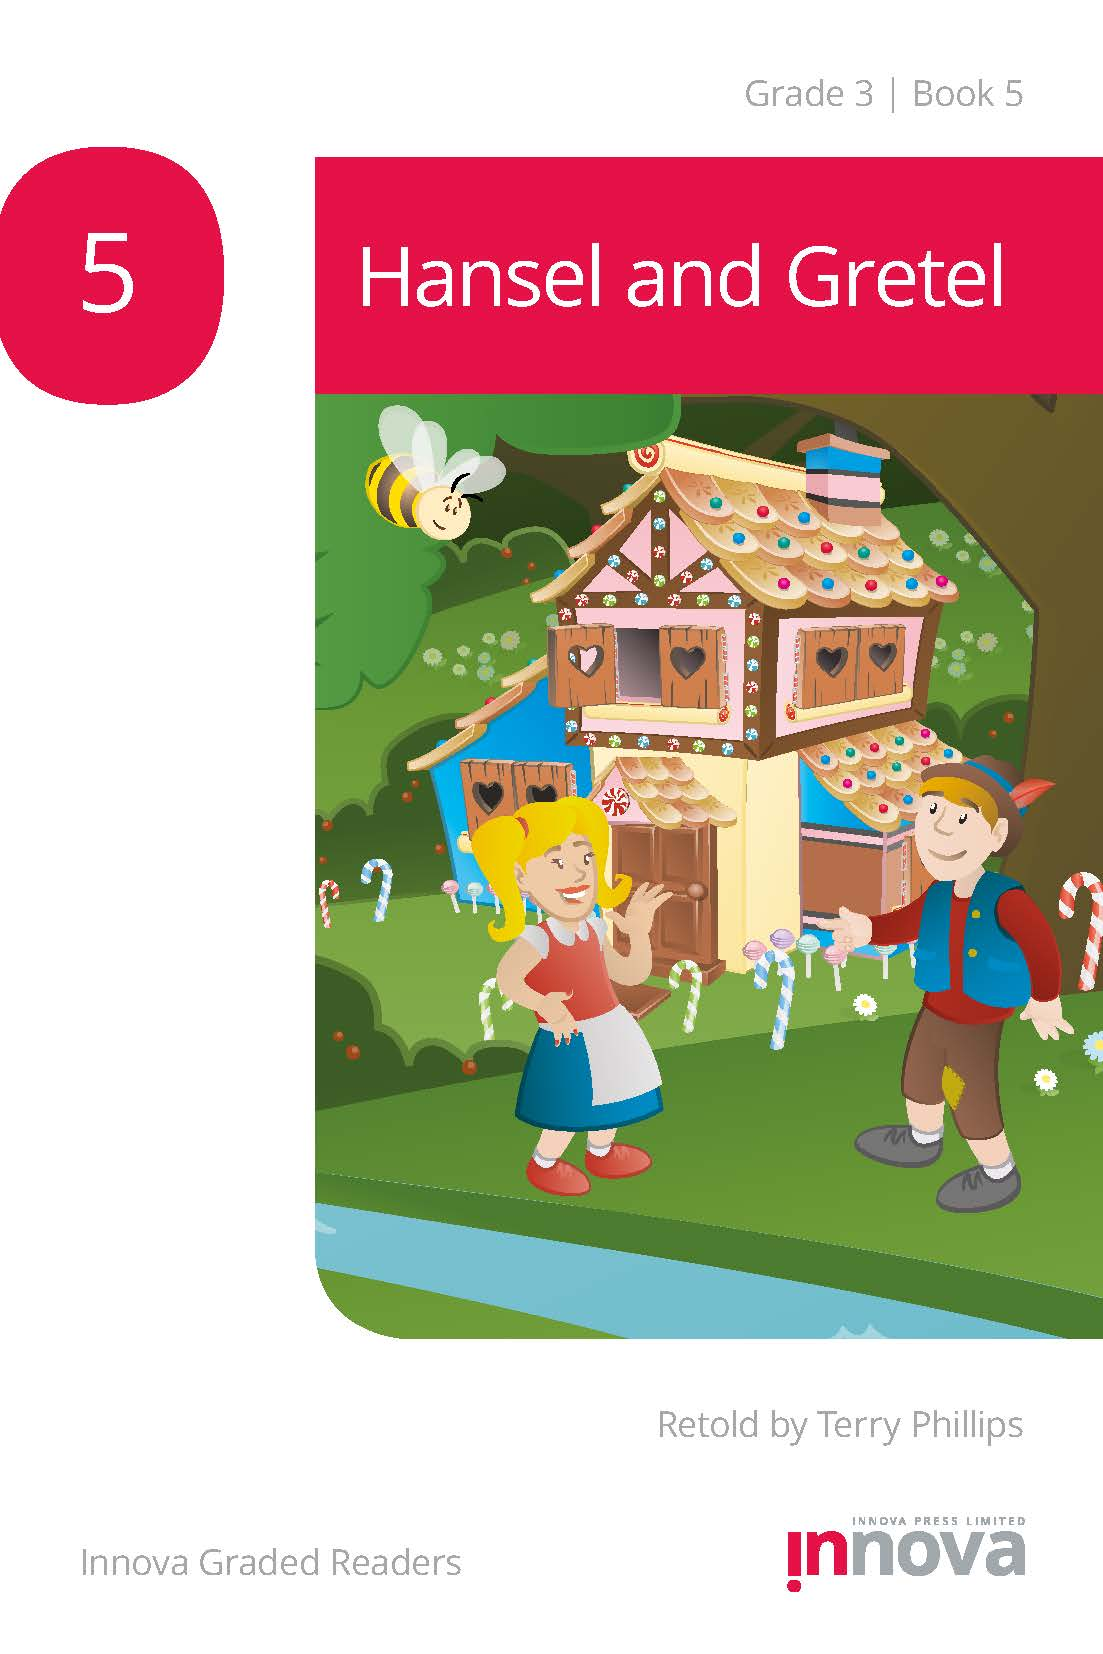 Innova Press Hansel and Gretel cover, a boy in a blue waistcoat and a girl with pigtails stand in front of a house made of sweets